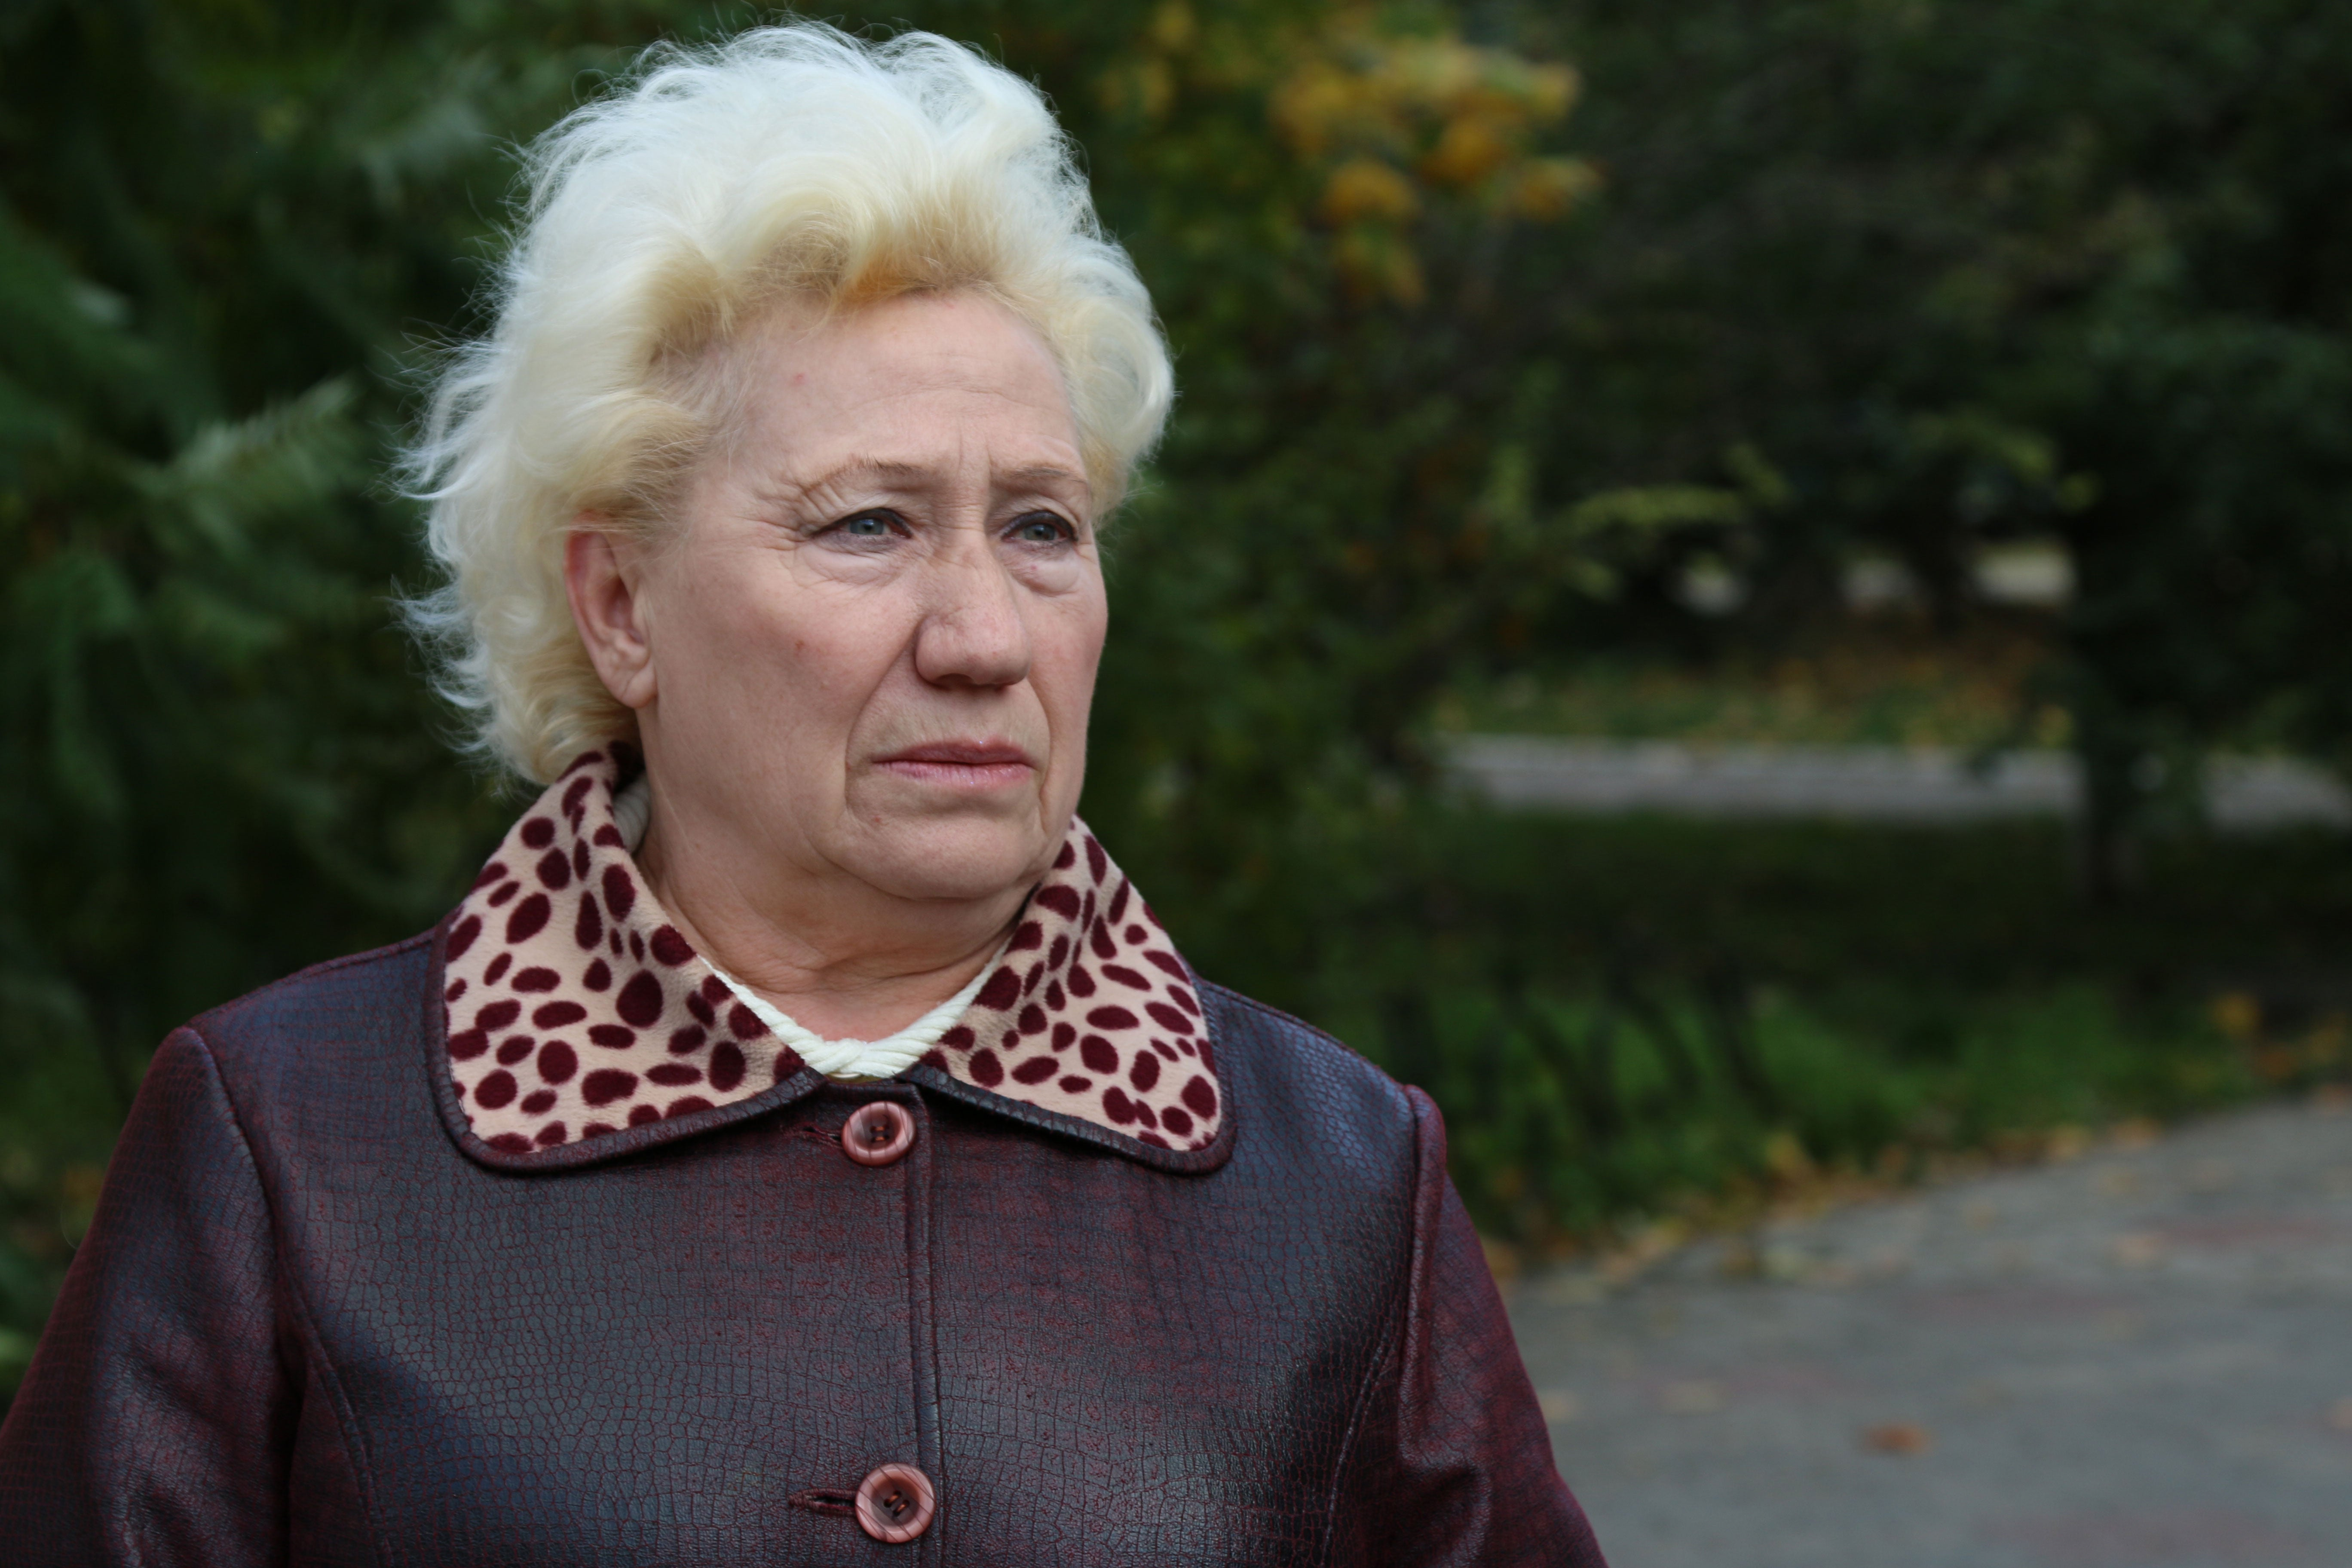 Vira Ivanenko, 65, and her husband Valeriy, 64, fled their home in Pervomaysk with their daughter and granddaughter after artillery damaged their apartment in the summer of 2015.